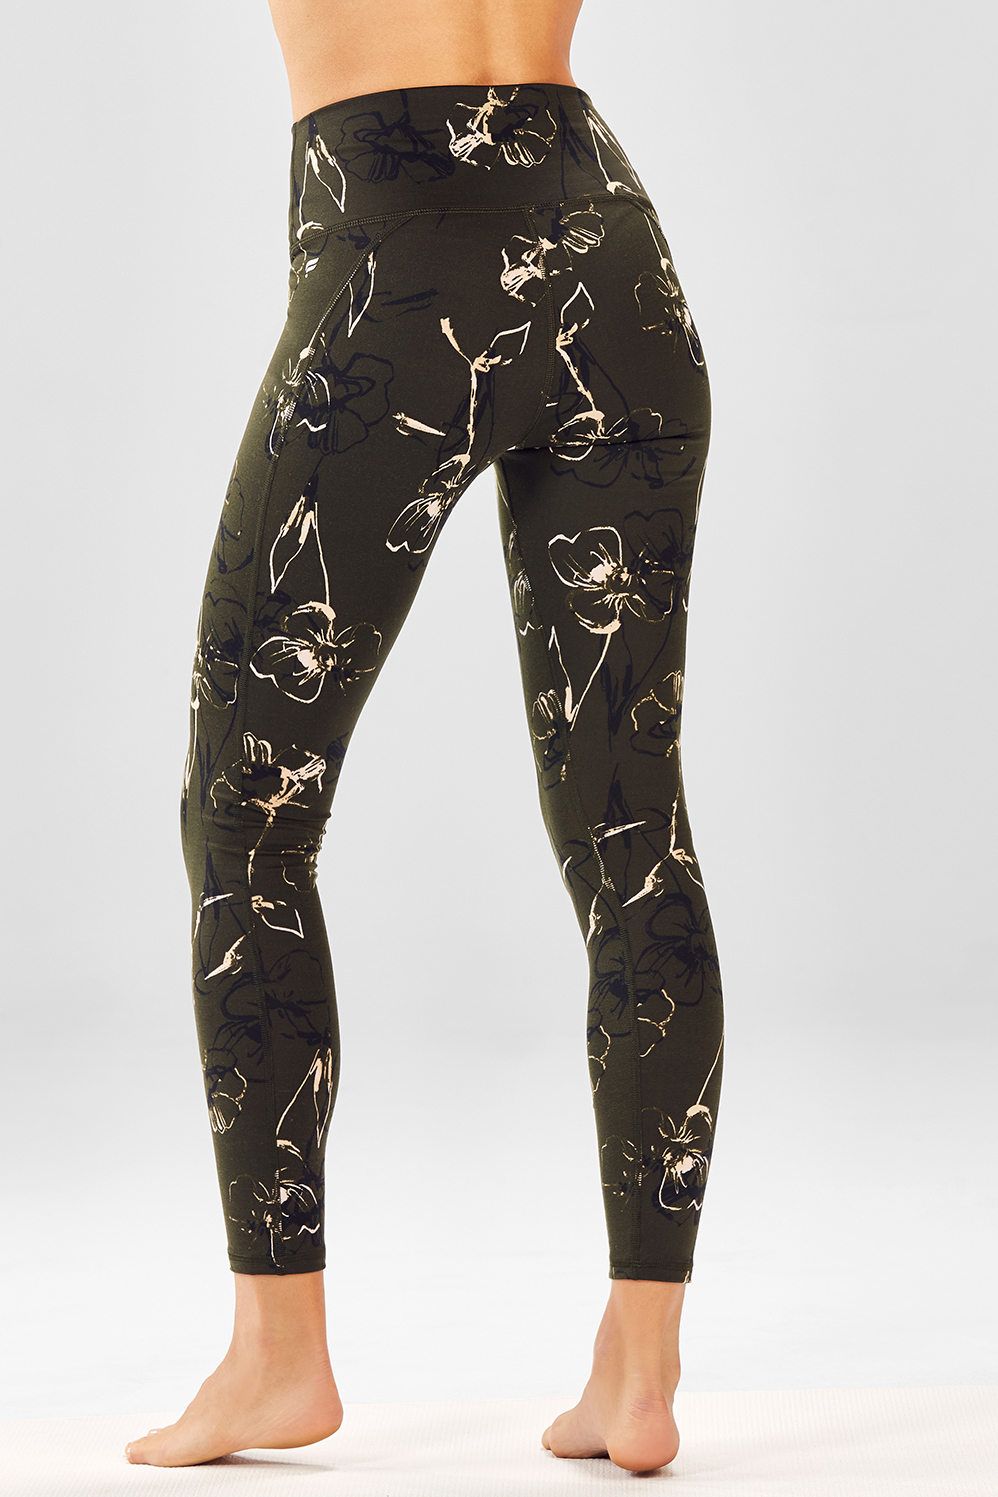 3938ca3e6dbcd9 High-Waisted Printed PowerHold® Legging - versilia dark olive